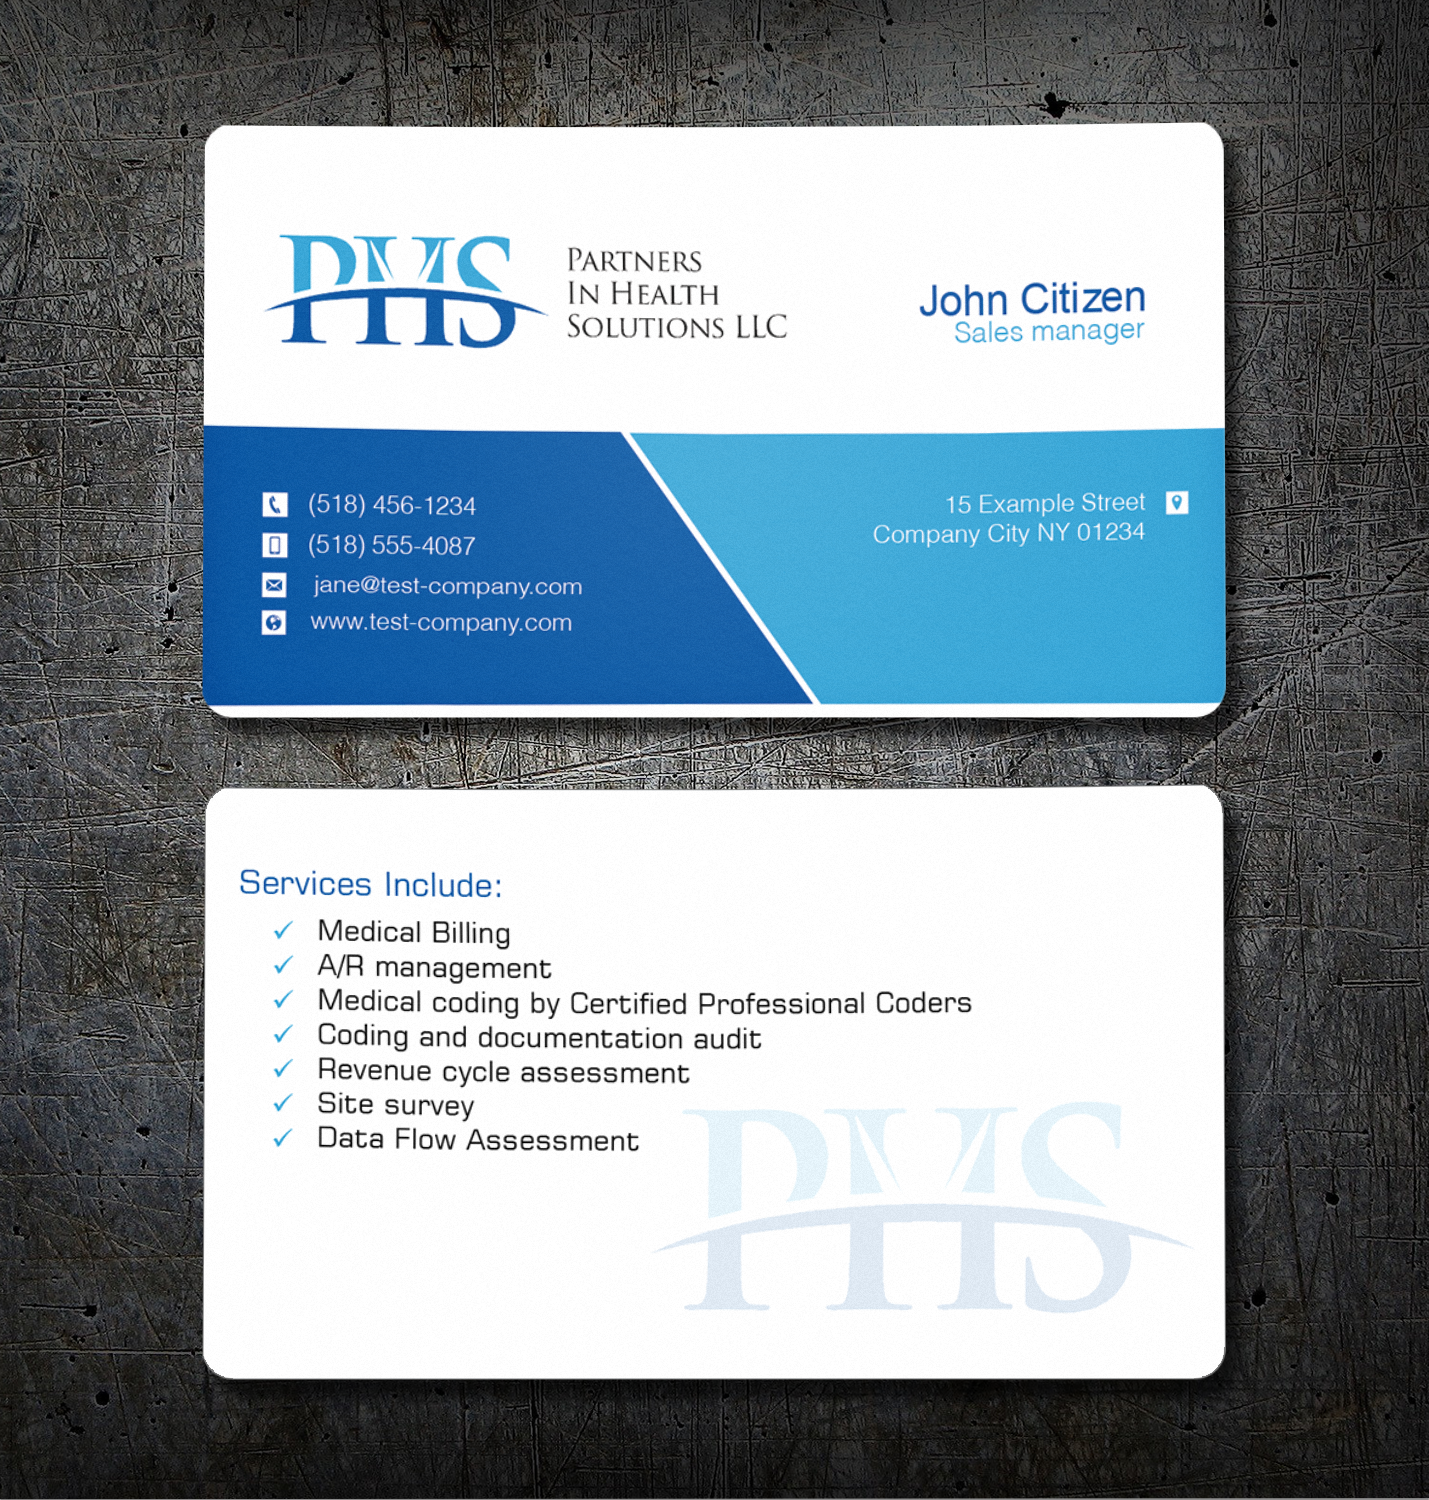 Serious, Professional Business Card Design for Partners In Health ...